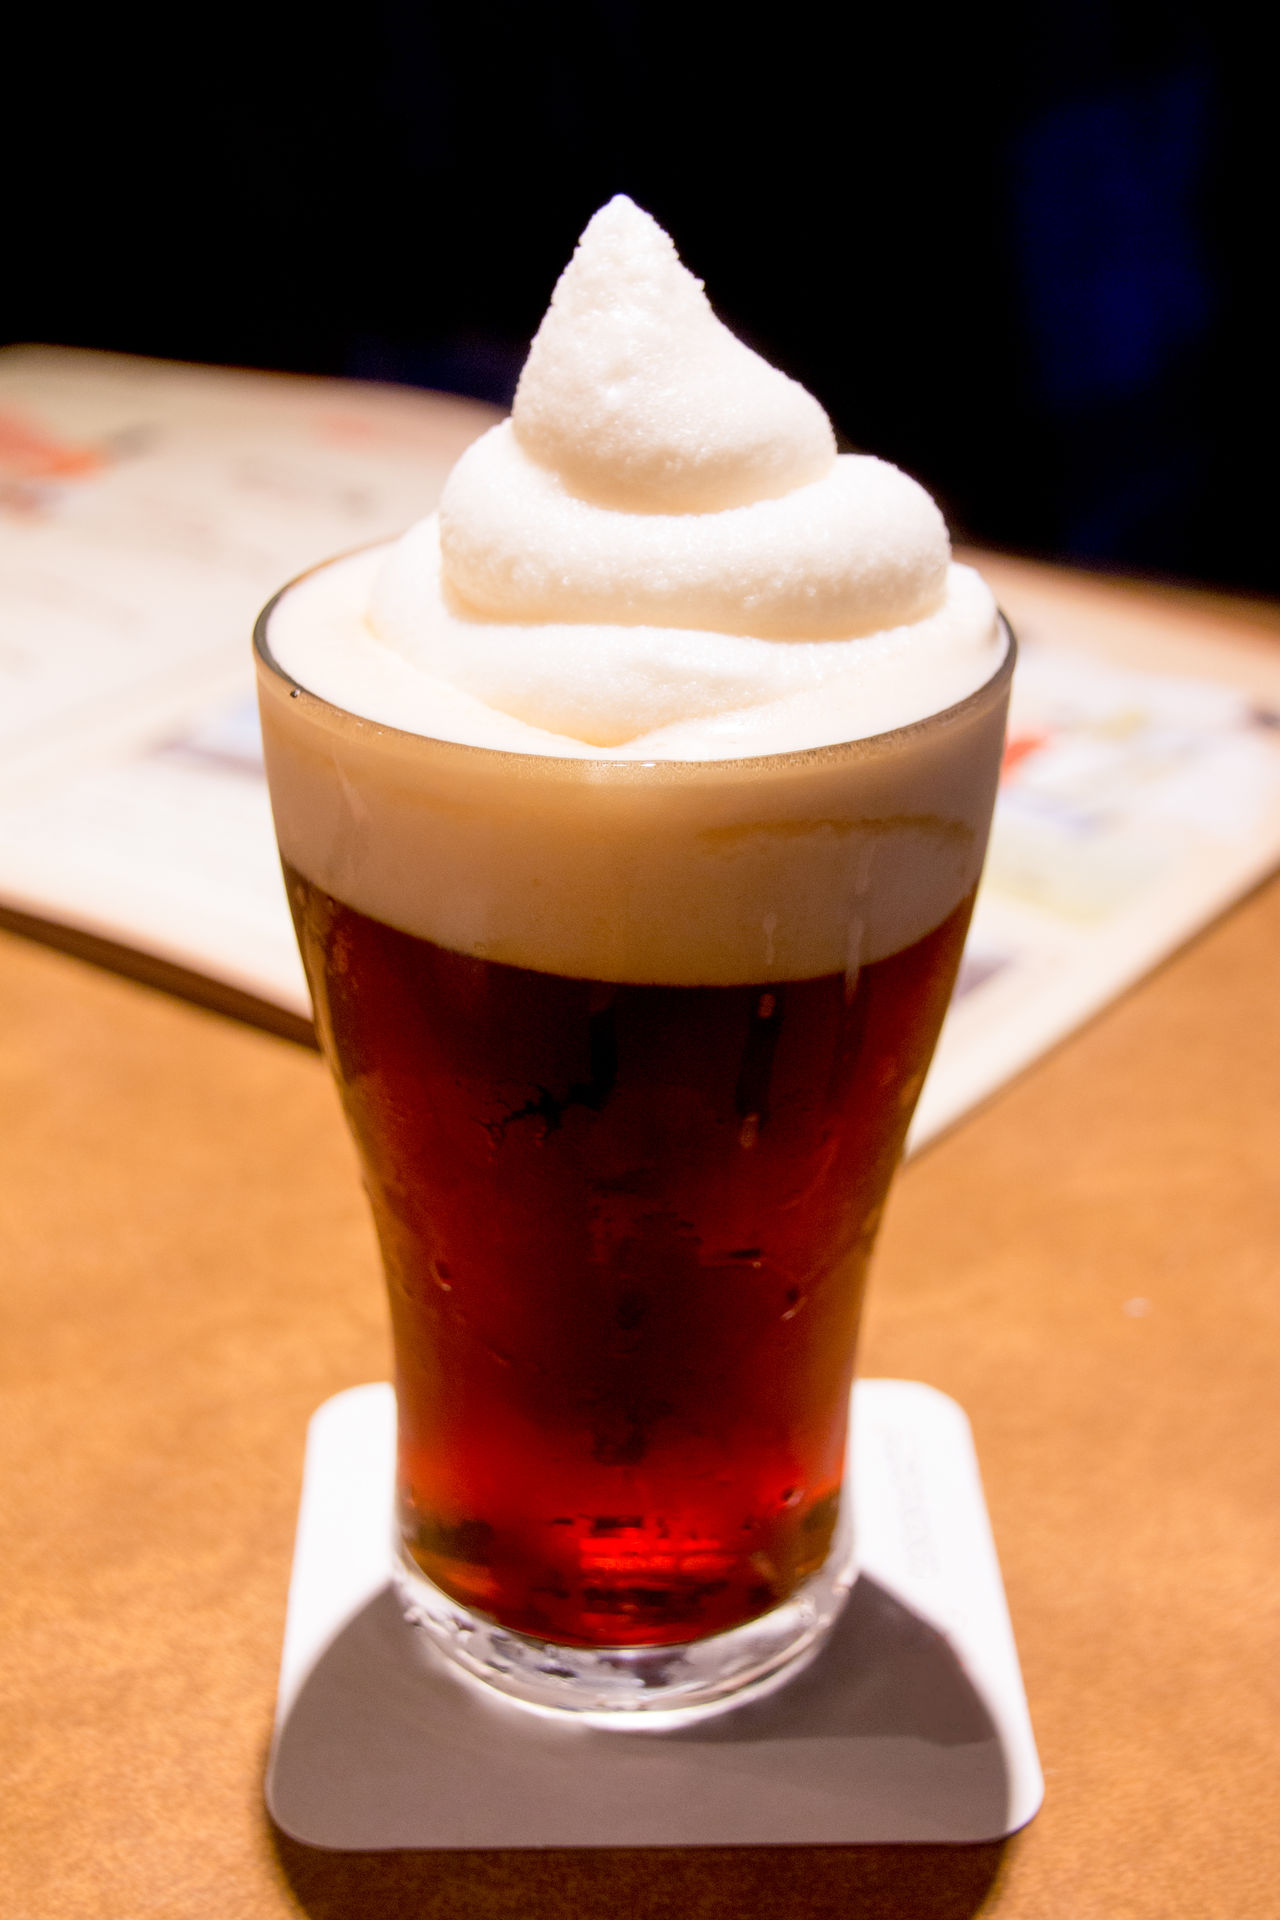 Beer Close-up Dark Beer Drinking Drinking Beer Focus On Foreground Freshness Frozen Frozen Food Glass - Material Indulgence No Logos No People Onthetable Ready-to-eat Red Beer Refreshment Restaurant Selective Focus Serving Size Still Life Summer Temptation Unrecognizable